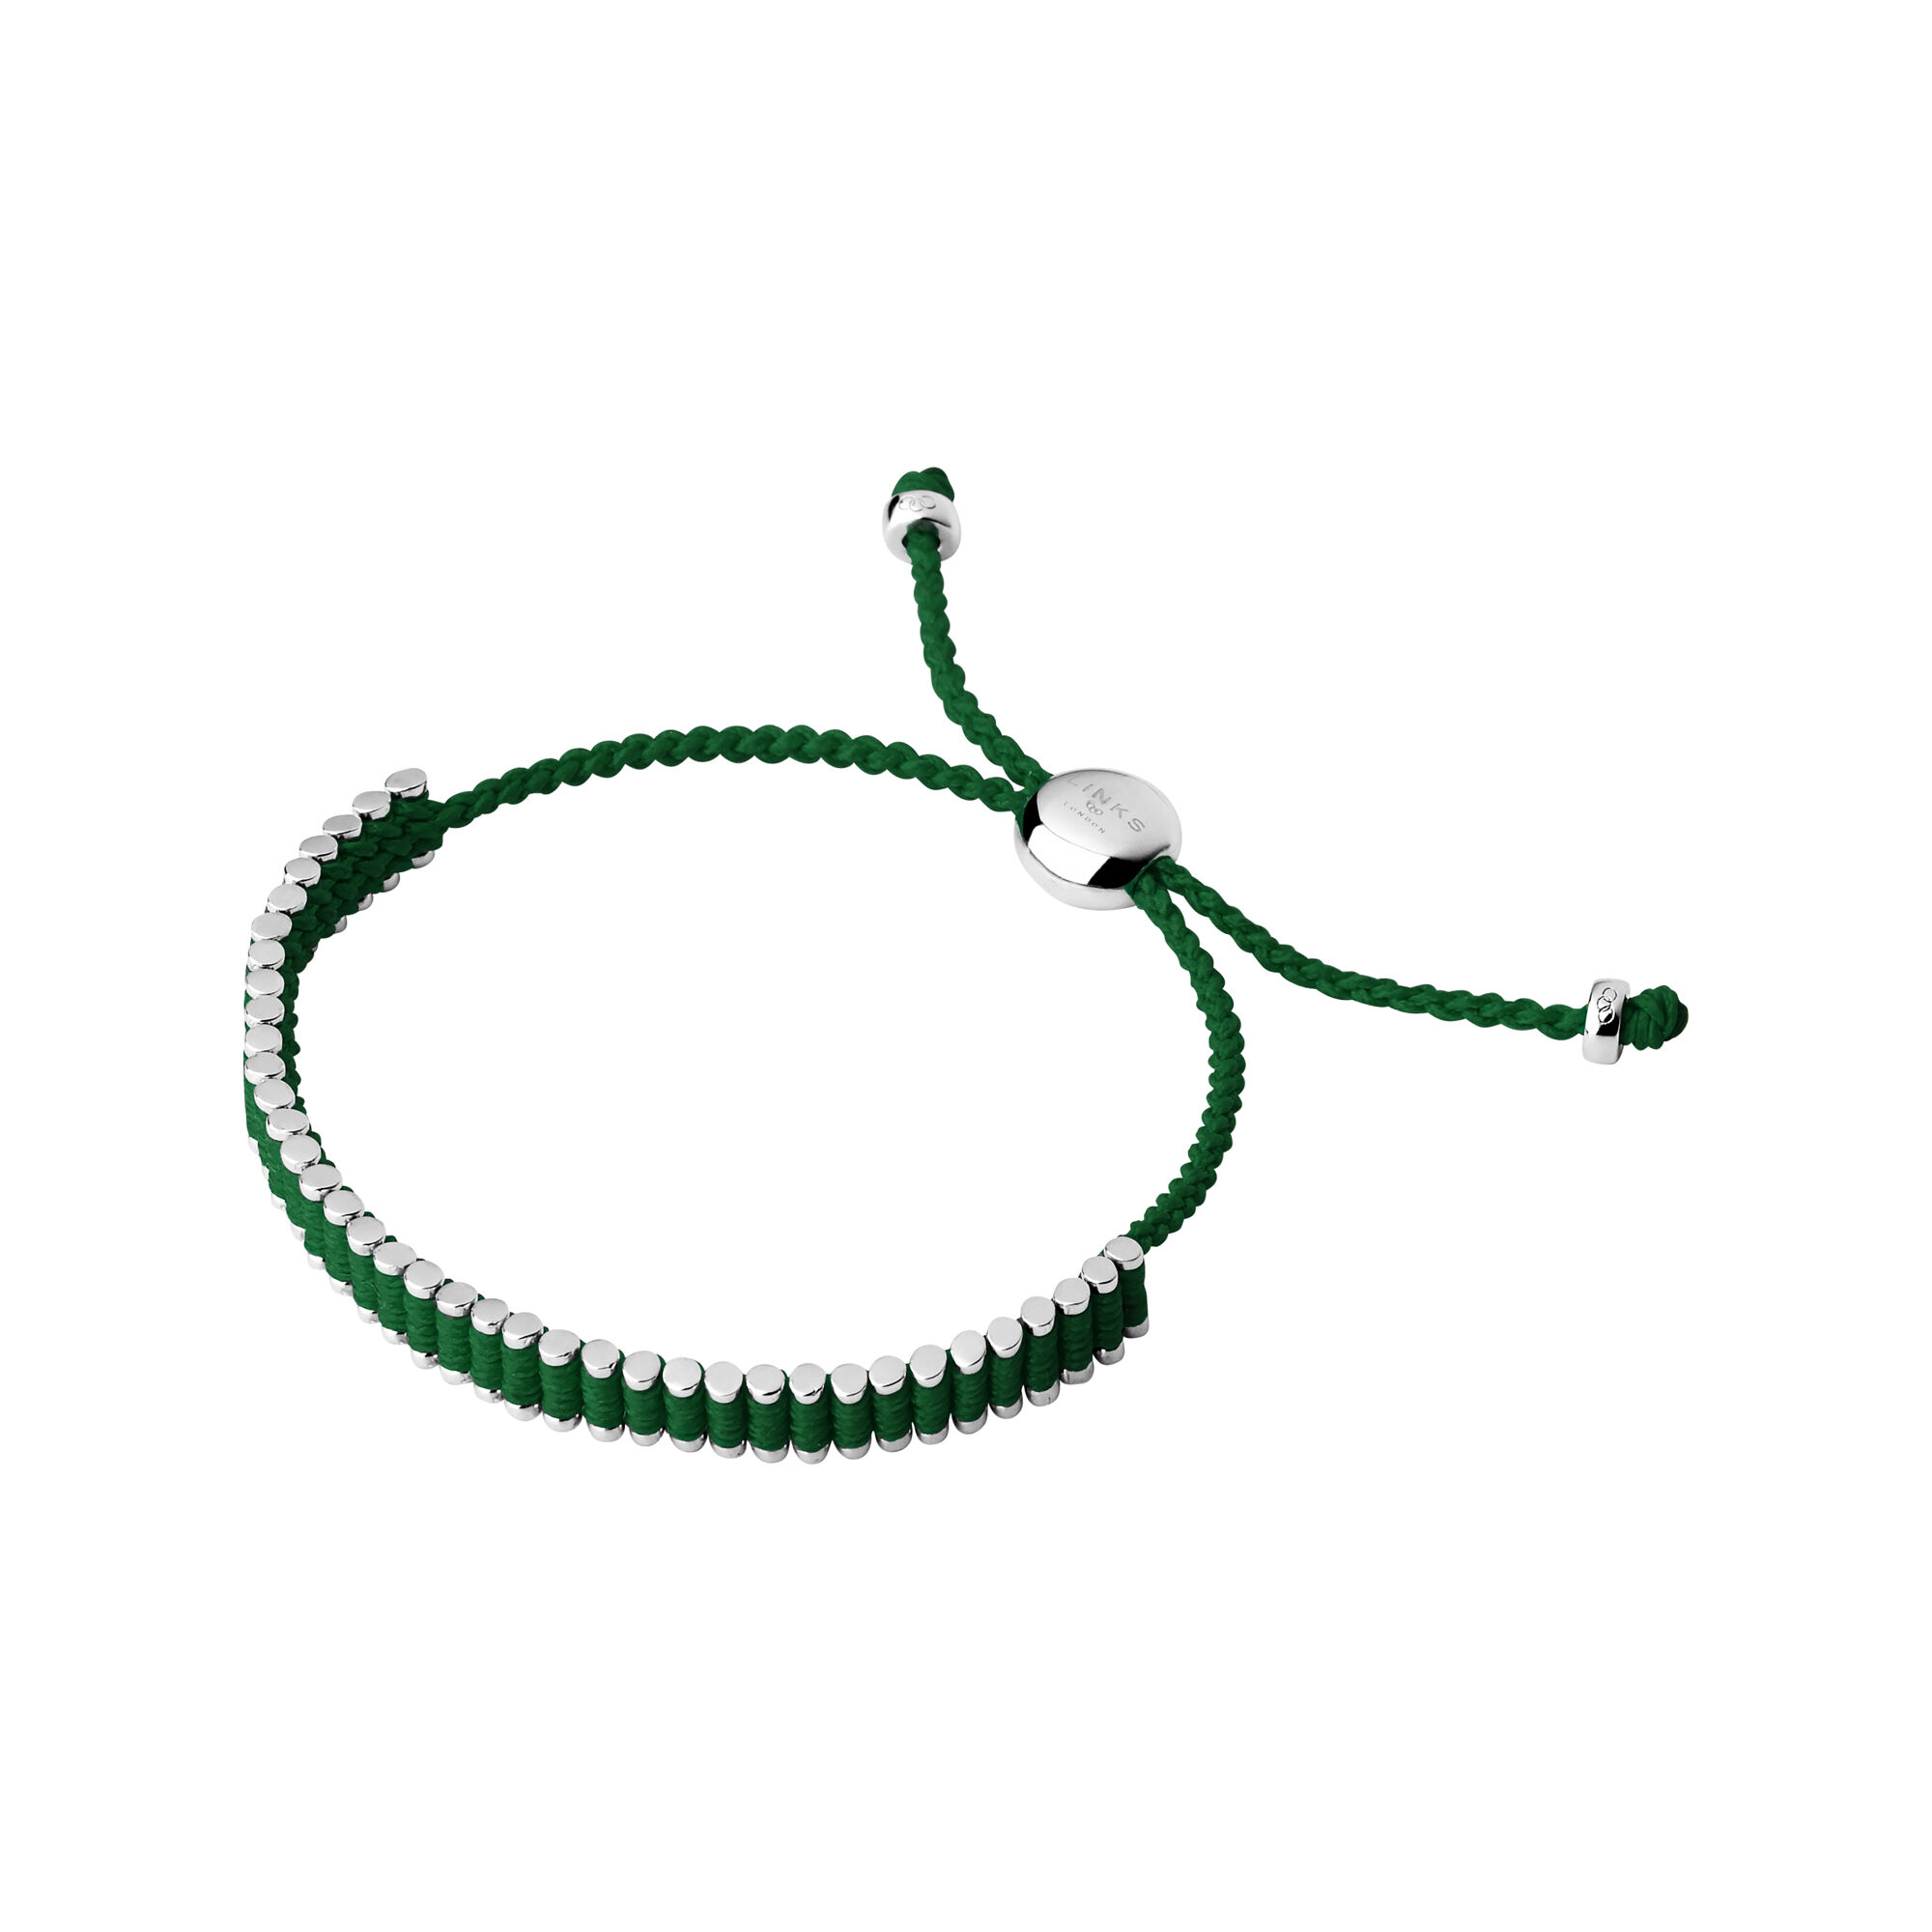 daily wear rounds bangles jewels these light p sterling made bracelet studded quality excellent natural silver completely with gemstone weight emerald are gleam